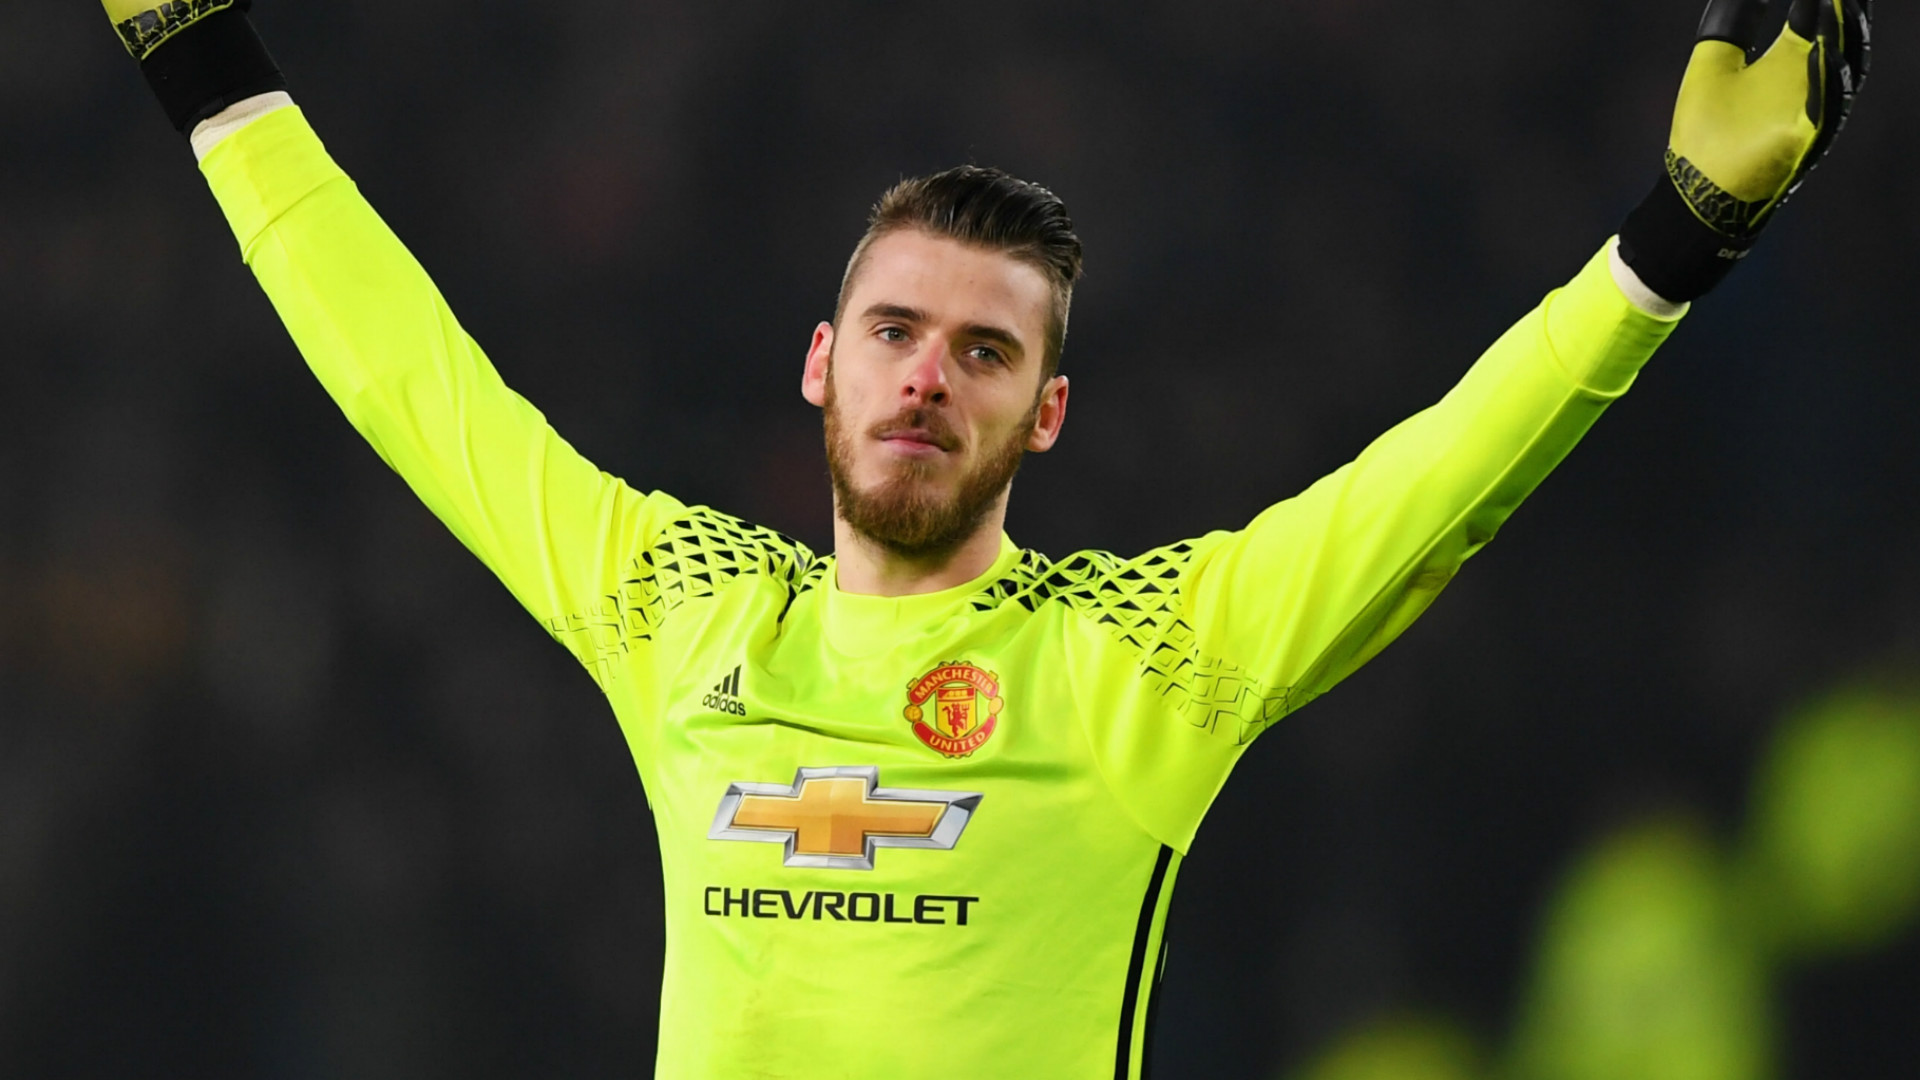 HD David de Gea Manchester United